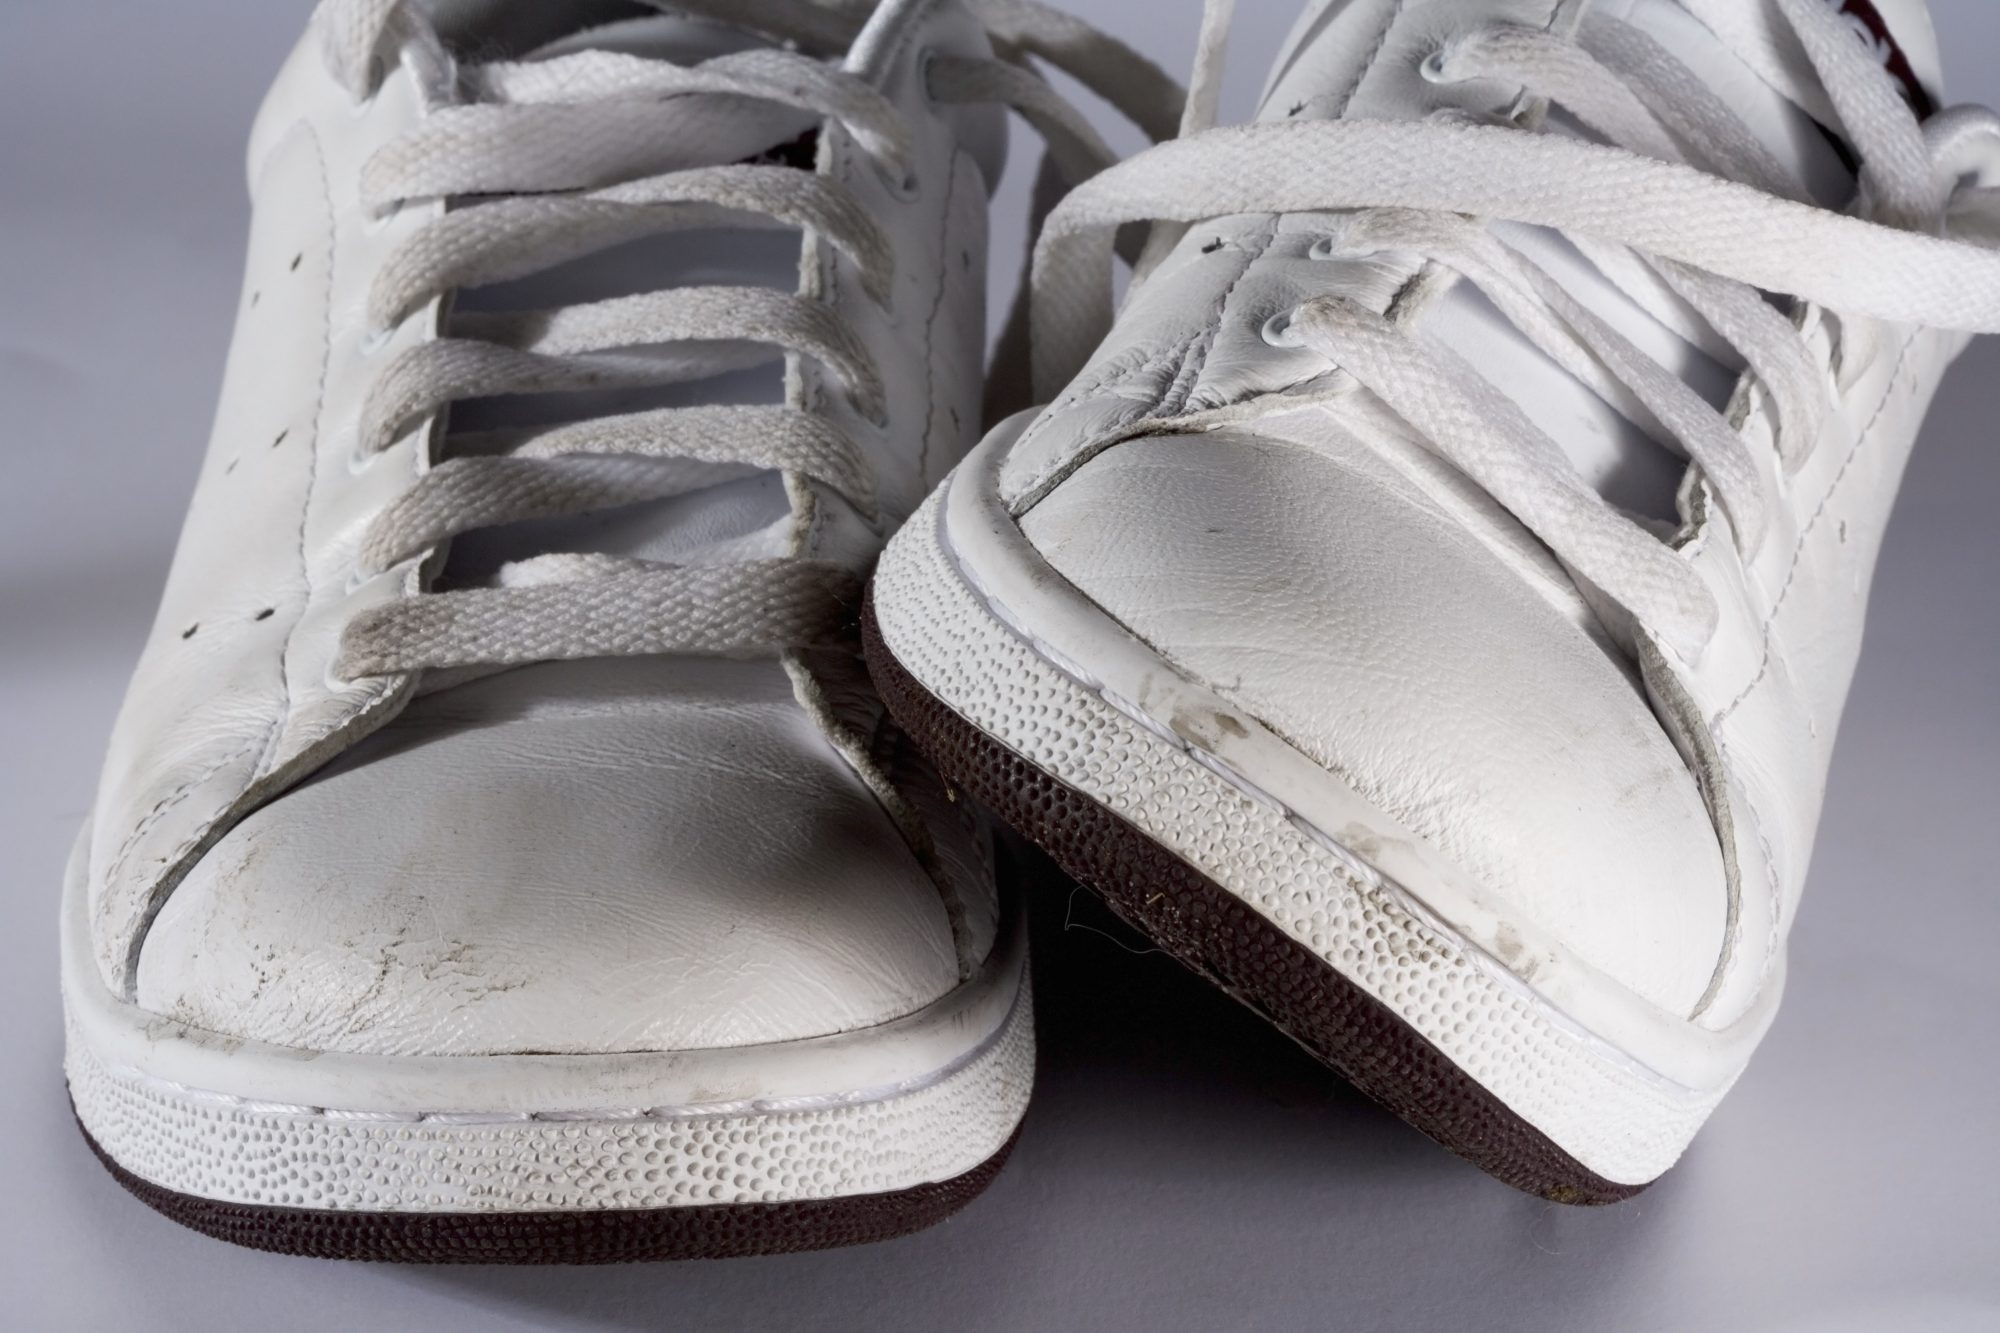 Worn White Sneakers